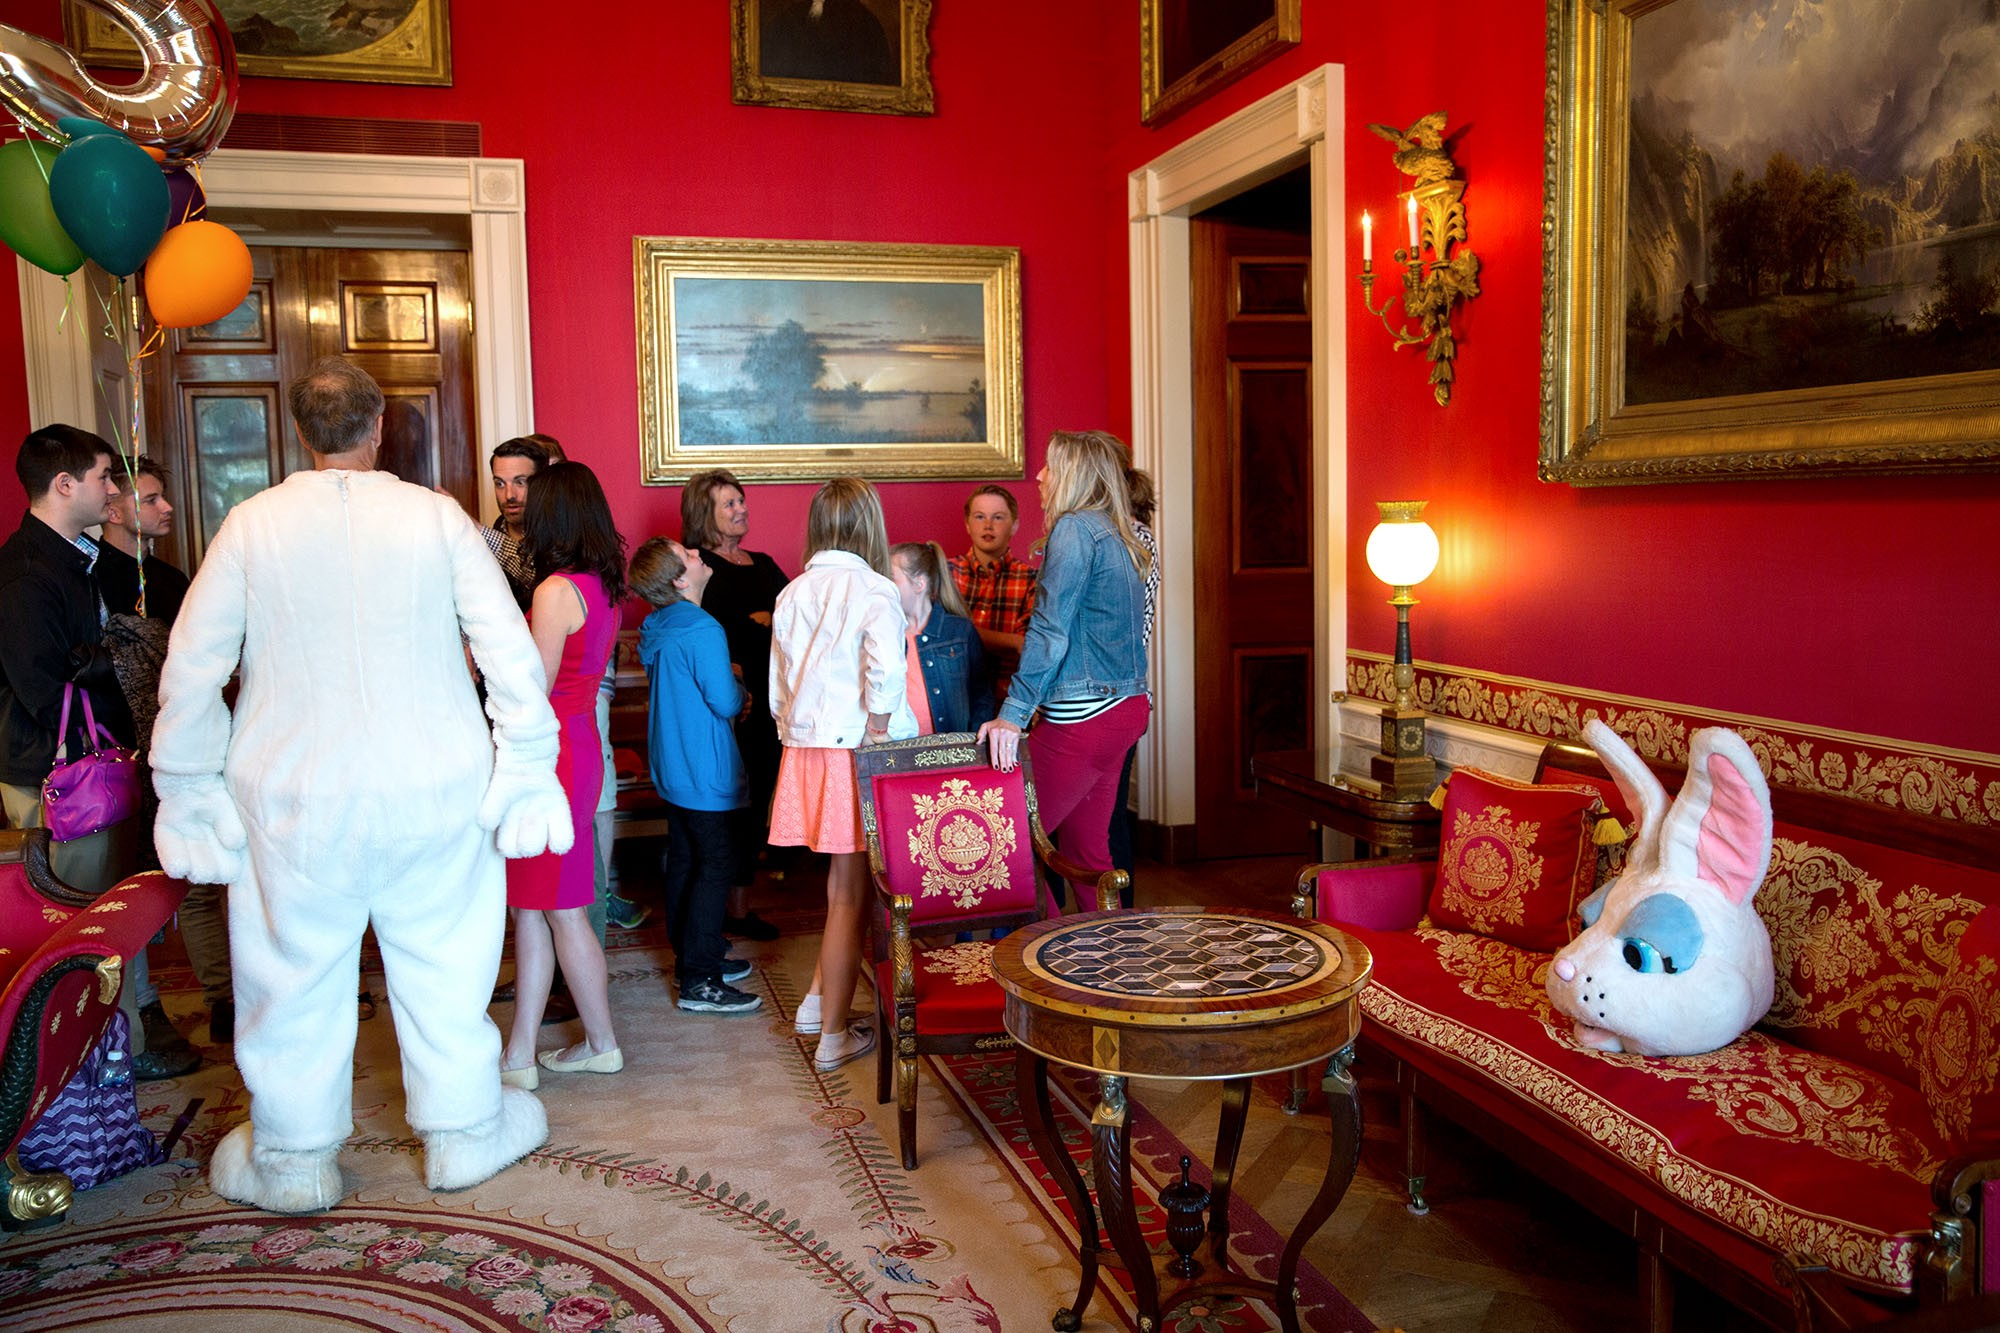 The Easter Bunny joins guests in the Red Room prior to the annual Easter Egg Roll on the South Lawn of the White House, April 6, 2015. (Official White House Photo by Pete Souza)